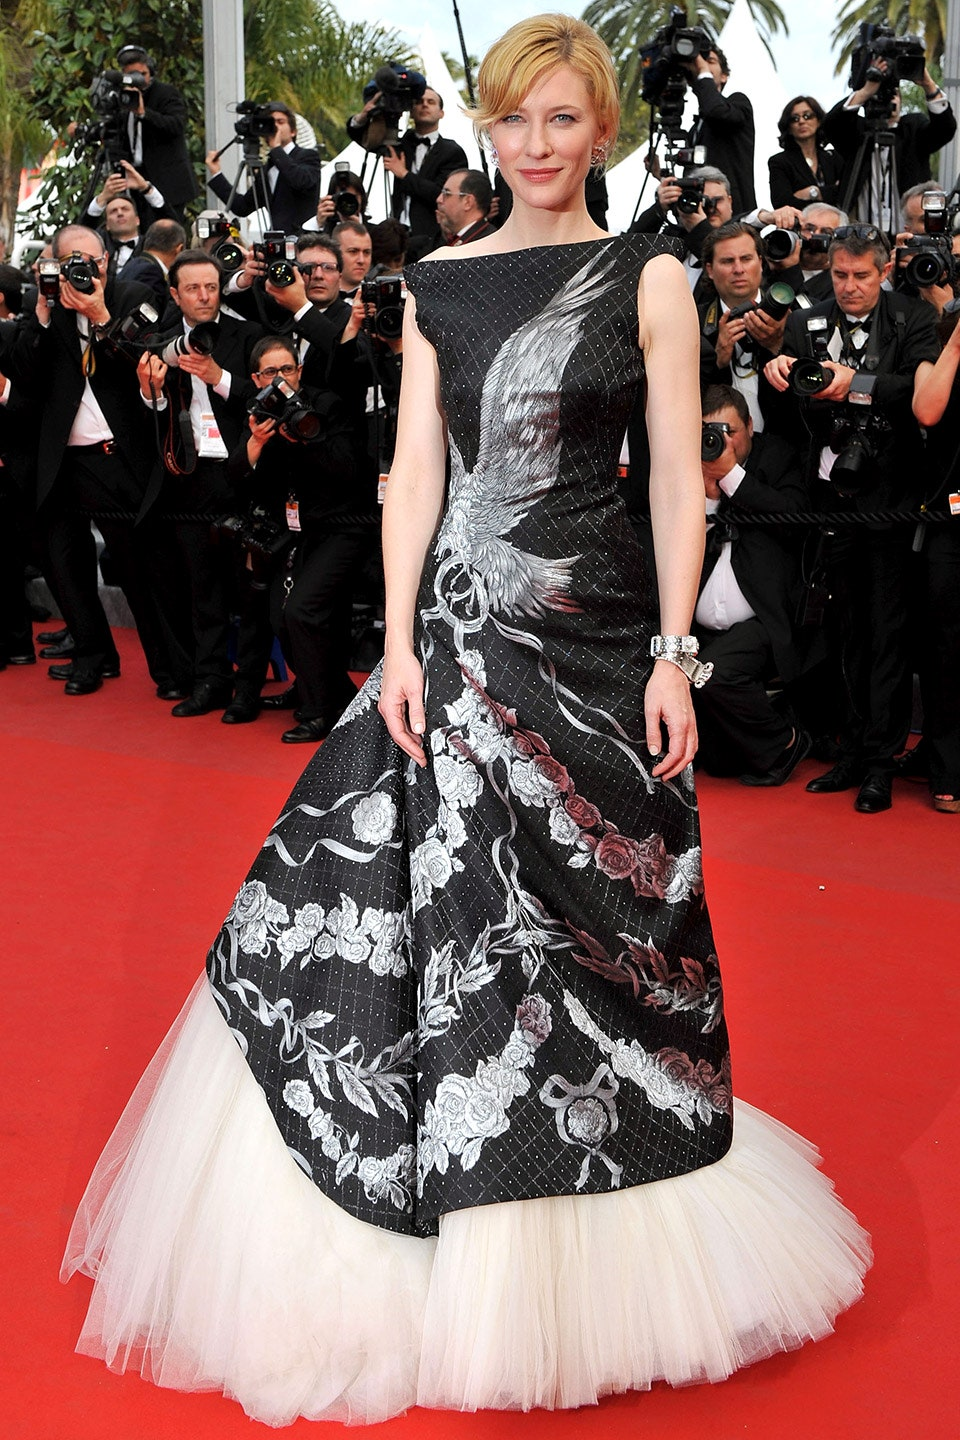 17_the_robin_hood_premiere_at_the_2012_cannes_film_festival_may_2010_alexander_mcqueen.jpg